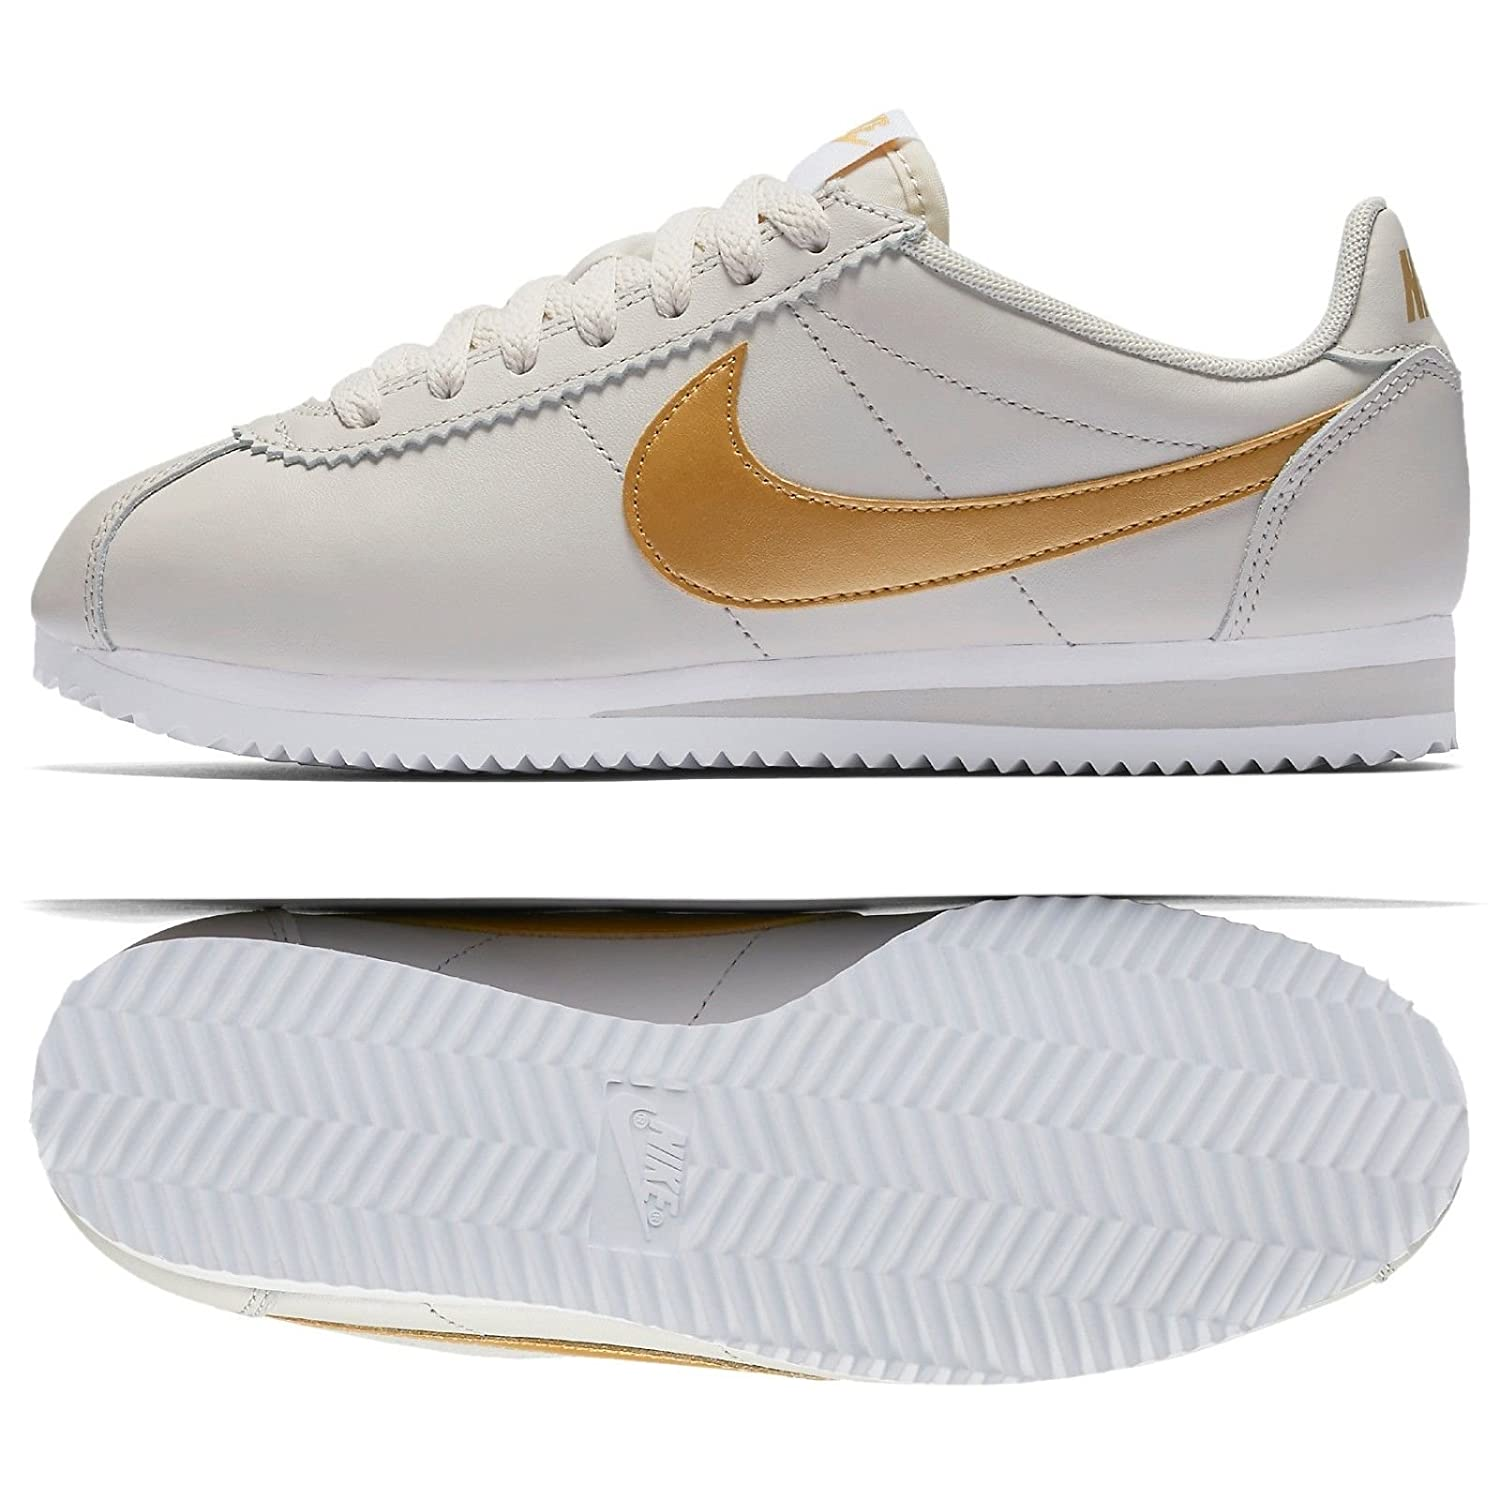 Nike Classic Cortez Leather  Light Bone , Zapatillas Deportivas de Mujer 40 EU|Light Bone/Metallic Gold-white